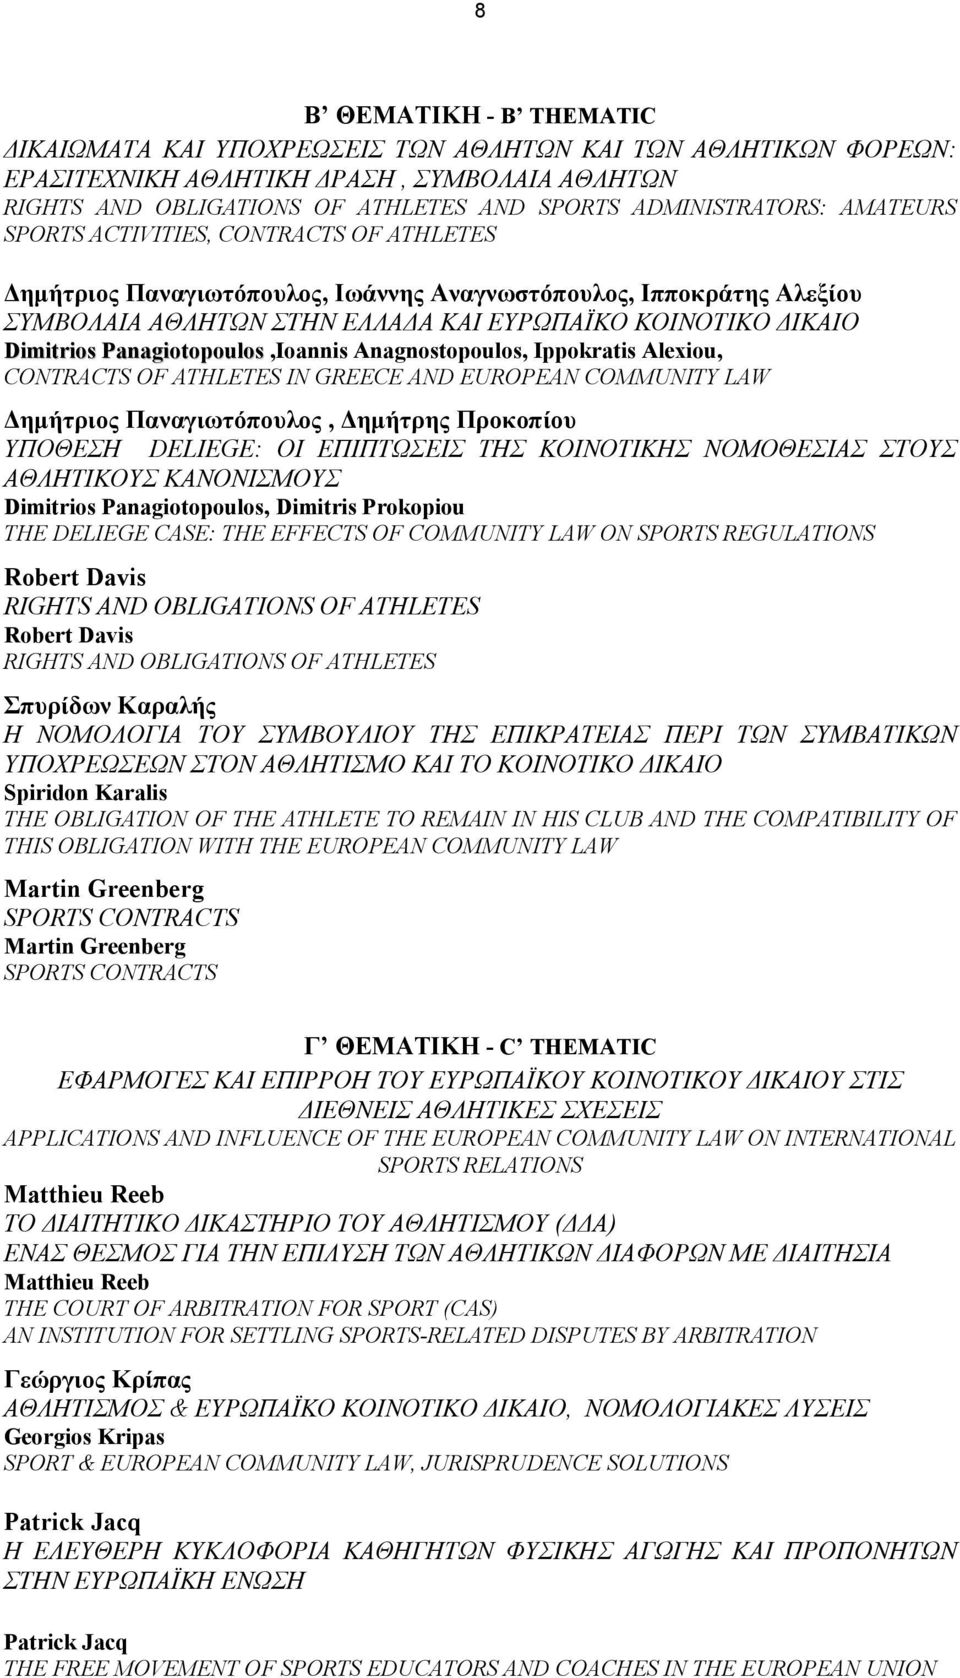 Panagiotopoulos,Ioannis Anagnostopoulos, Ippokratis Alexiou, CONTRACTS OF ATHLETES IN GREECE AND EUROPEAN COMMUNITY LAW ηµήτριος Παναγιωτόπουλος, ηµήτρης Προκοπίου ΥΠΟΘΕΣΗ DELIEGE: ΟΙ ΕΠΙΠΤΩΣΕΙΣ ΤΗΣ